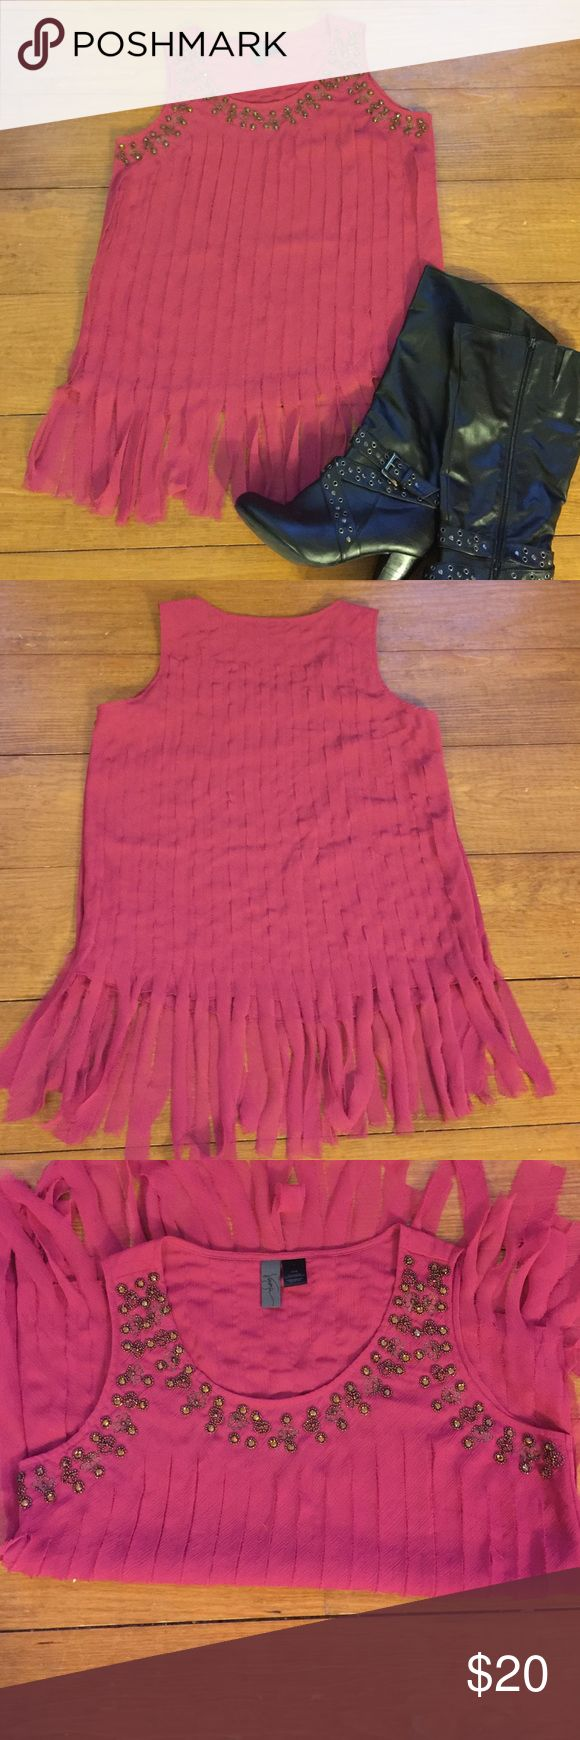 Woman's dressy top Woman's dressy top from Venezia Lane Bryant size 14/16. Beautiful beading and a very uniquely frayed style front and back! Very dressy and very classy! Would be beautiful with black leggings and boots!! True color is a pinkish/mauve. Venezia Tops Blouses